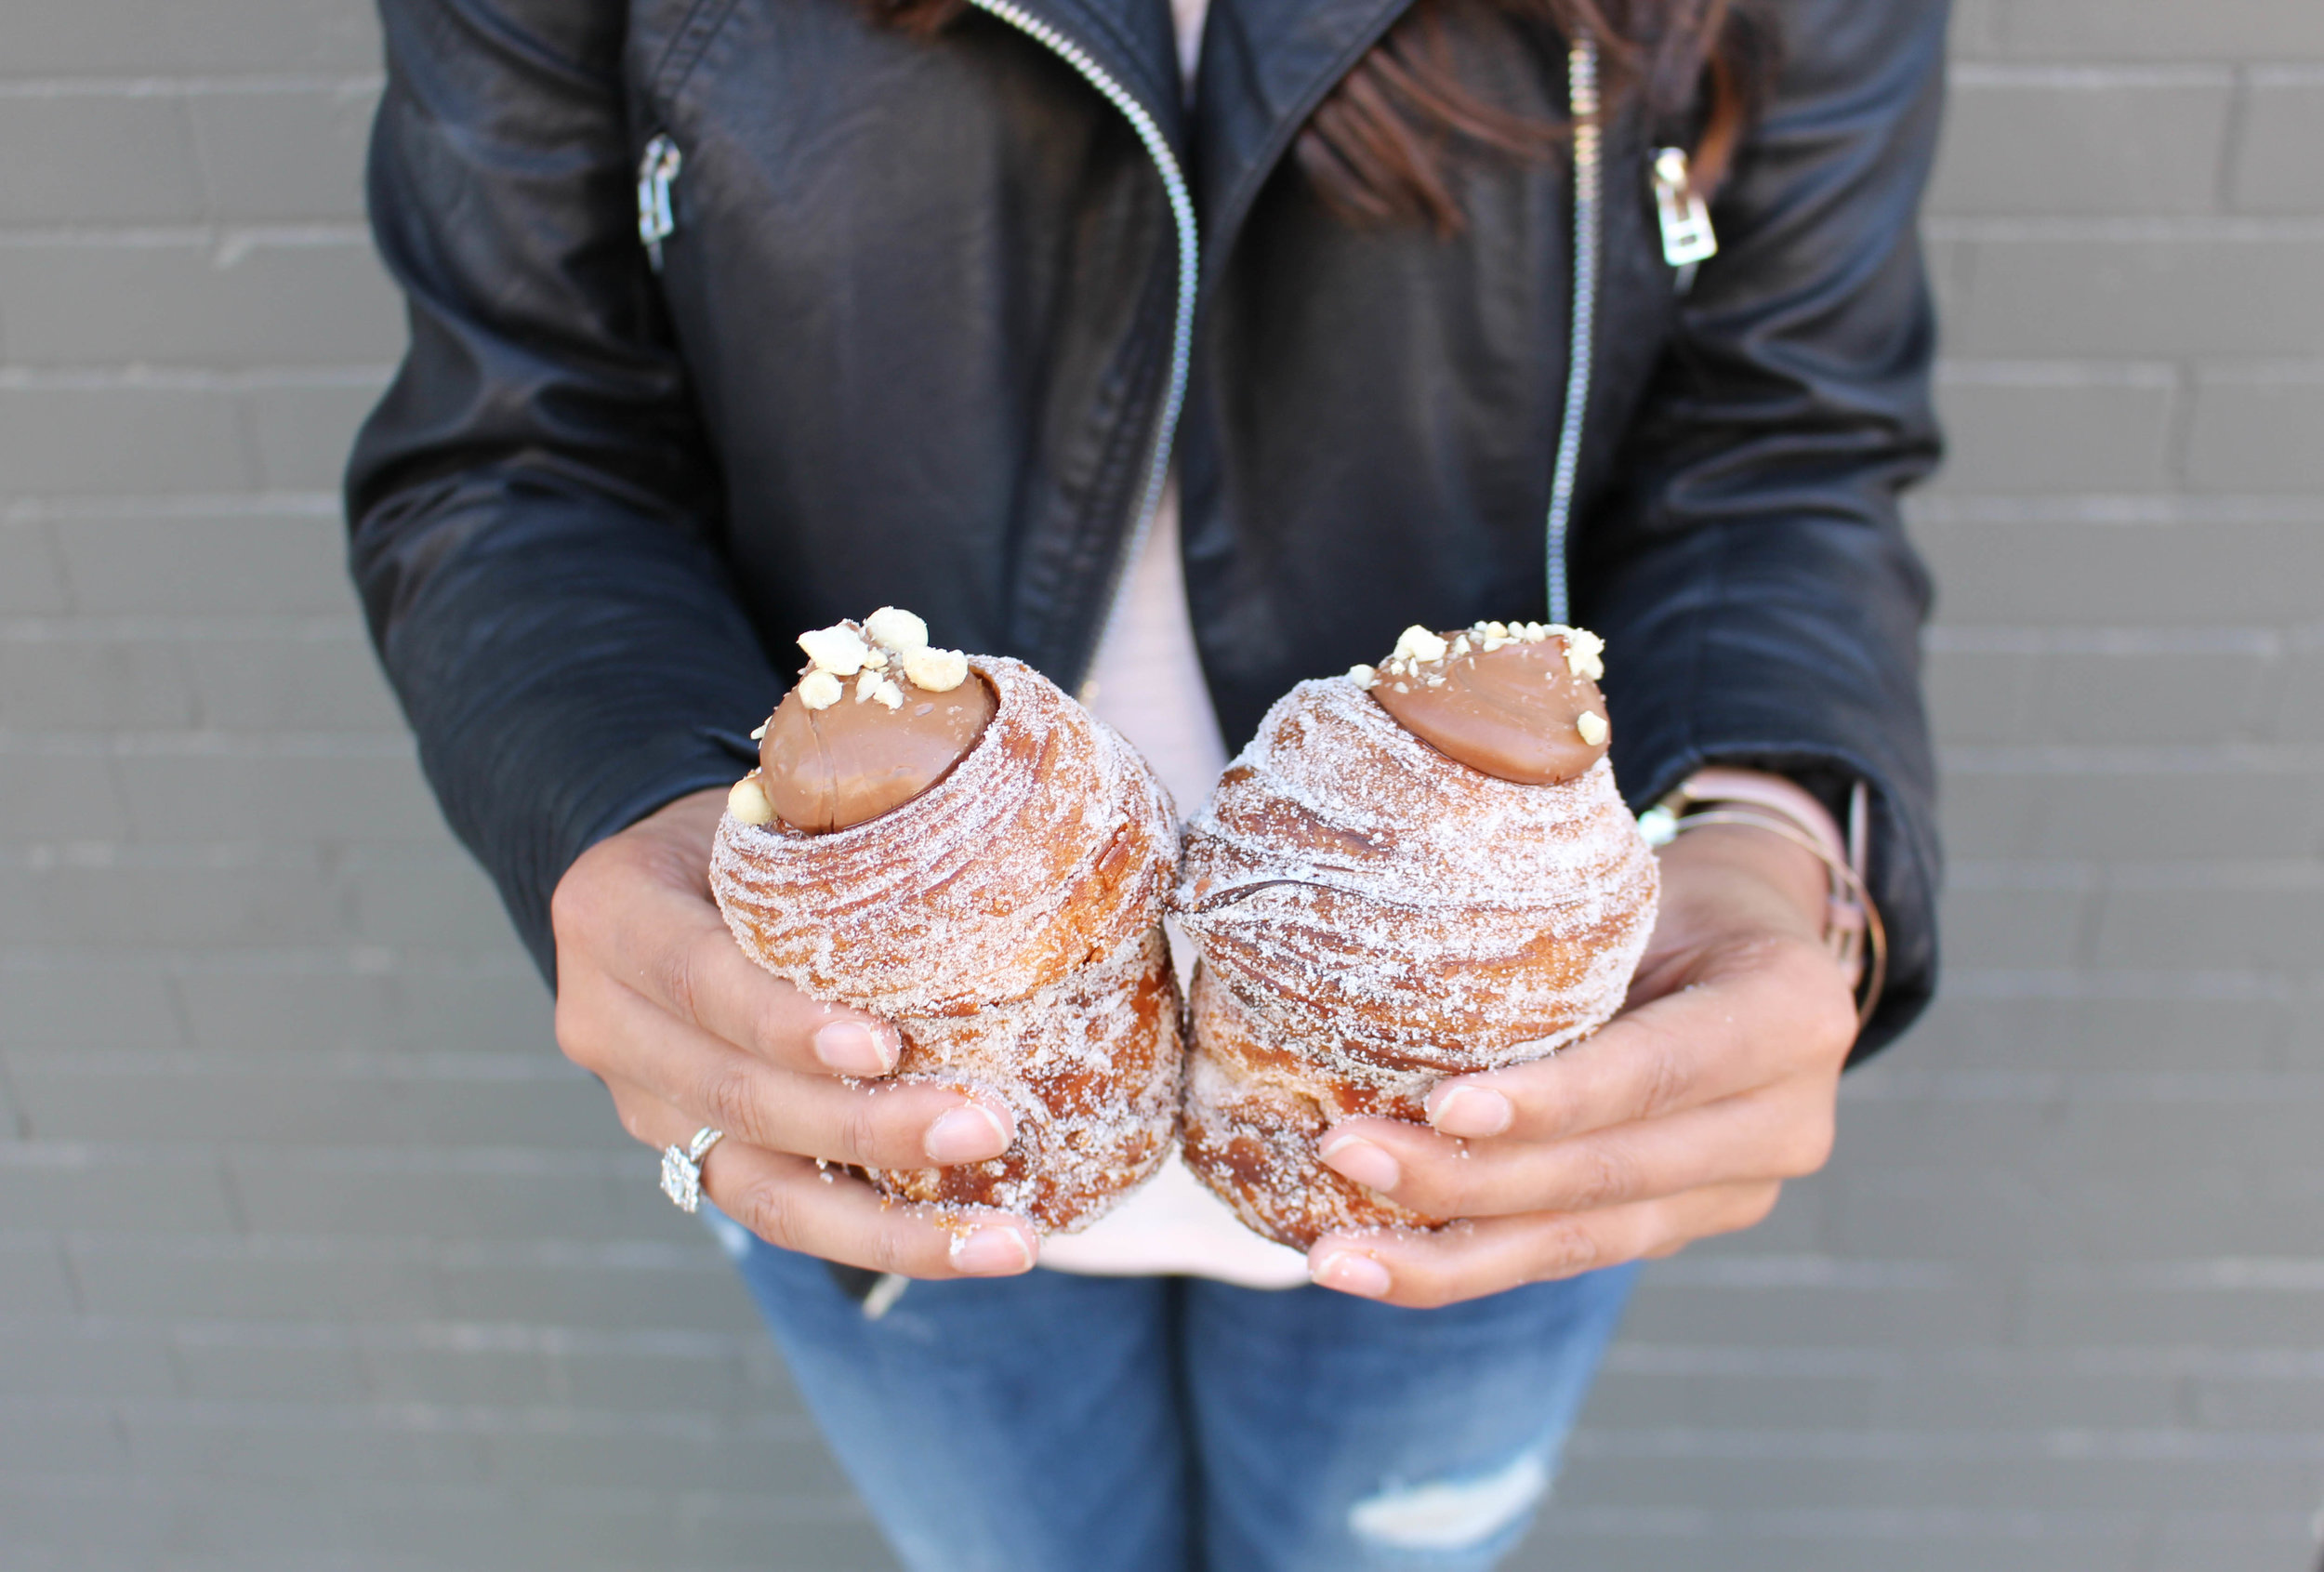 THE FAMOUS CRUFFIN AT MR. HOLMES BAKEHOUSE